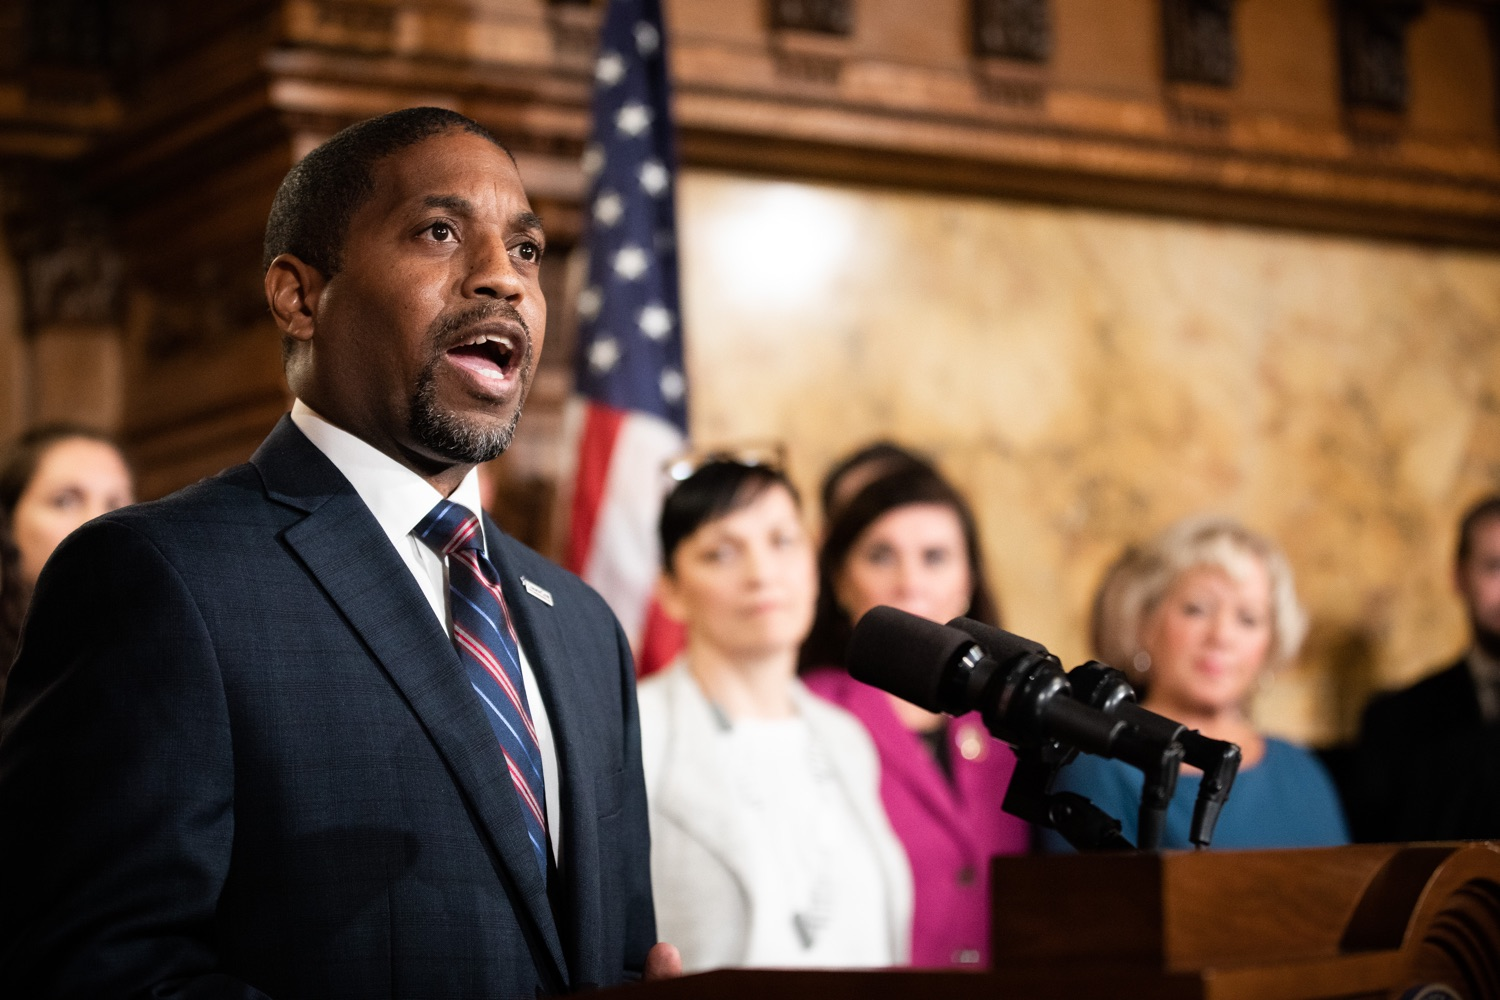 "<a href=""http://filesource.abacast.com/commonwealthofpa/photo/17554_gov_voter_reform_bill_dz_010.jpg"" target=""_blank"">⇣ Download Photo<br></a>Harrisburg, PA  Micah Sims, Executive Director, Common Cause PA speaks at the Election Reform Bill signing. Governor Wolf made voting more convenient and secure by signing Act 77 of 2019, the most significant improvement to Pennsylvanias elections in more than 80 years. The bipartisan compromise legislation takes effect for the April 2020 primary election and makes Pennsylvania a national leader with voter-friendly election reforms."